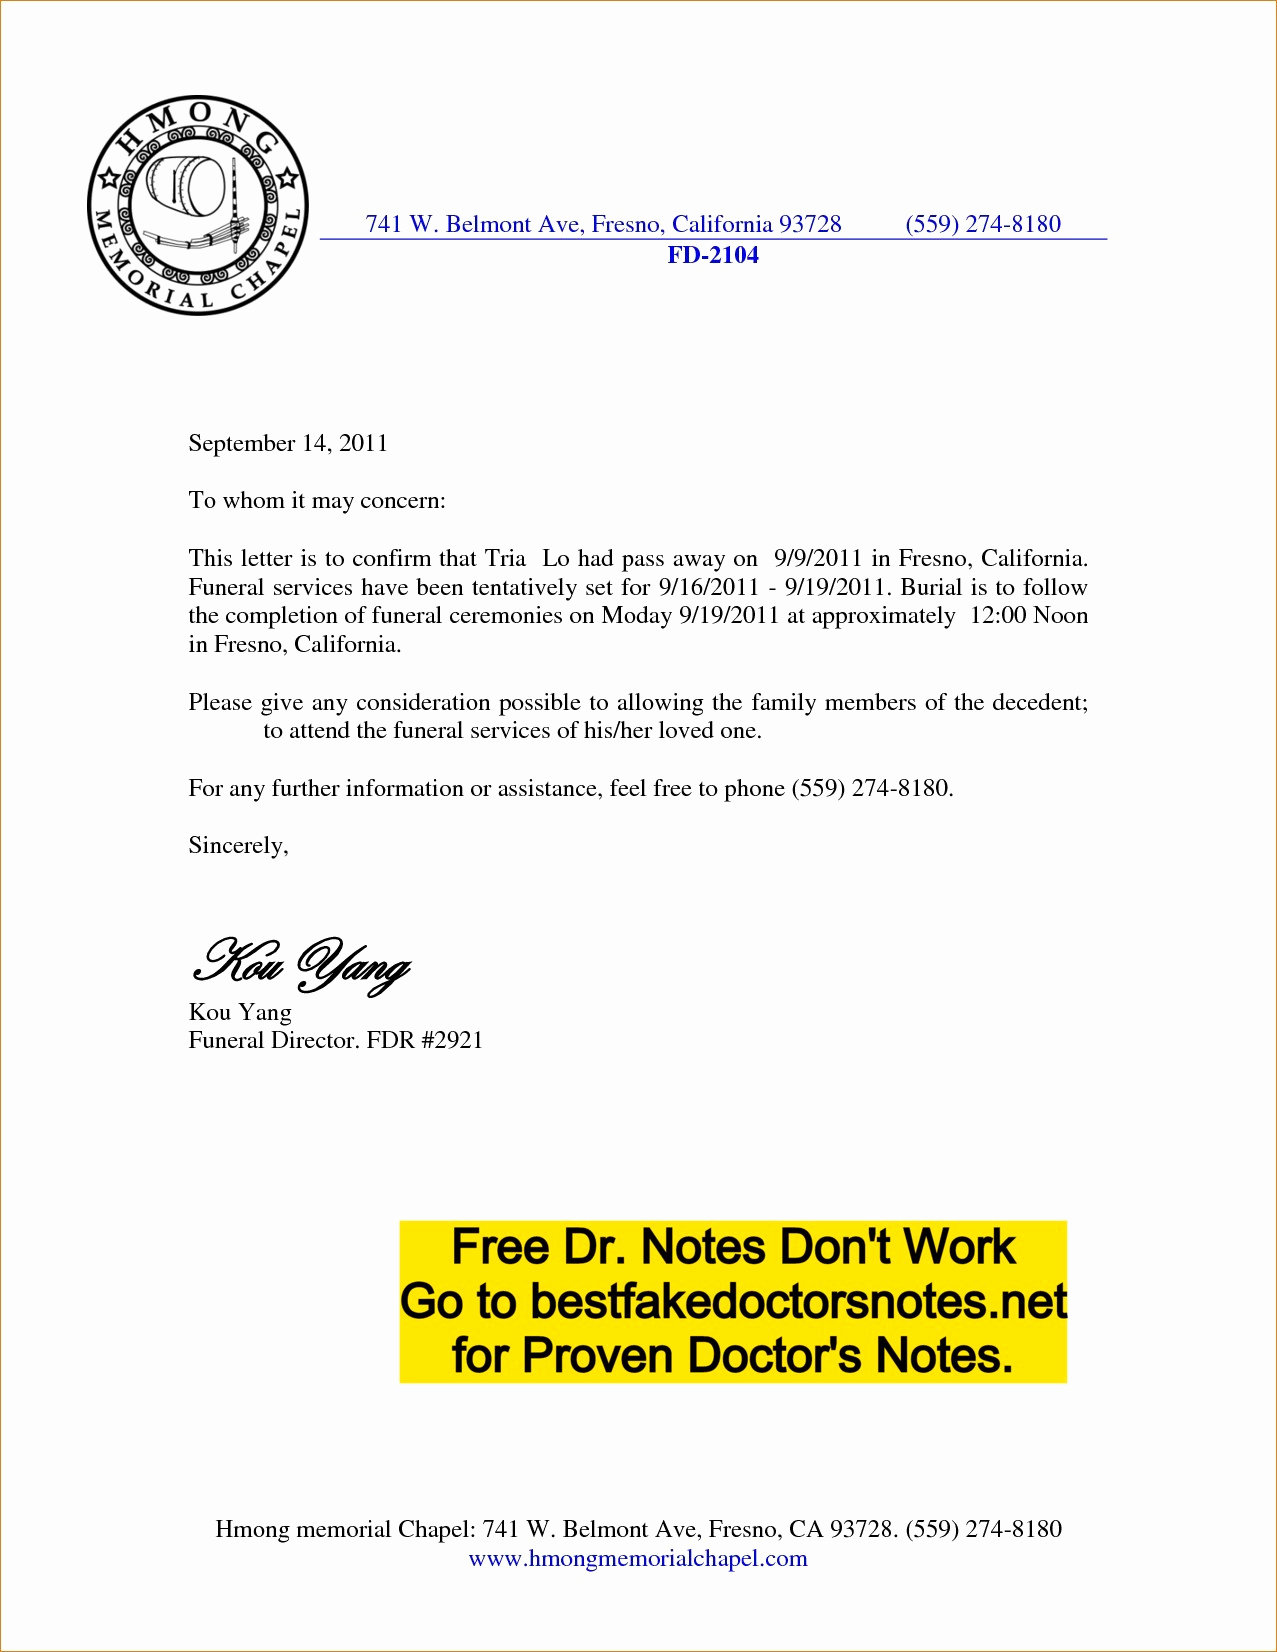 Doctors Notes for Work New 4 Easy Ways to Use A Printable Fake Doctors Note